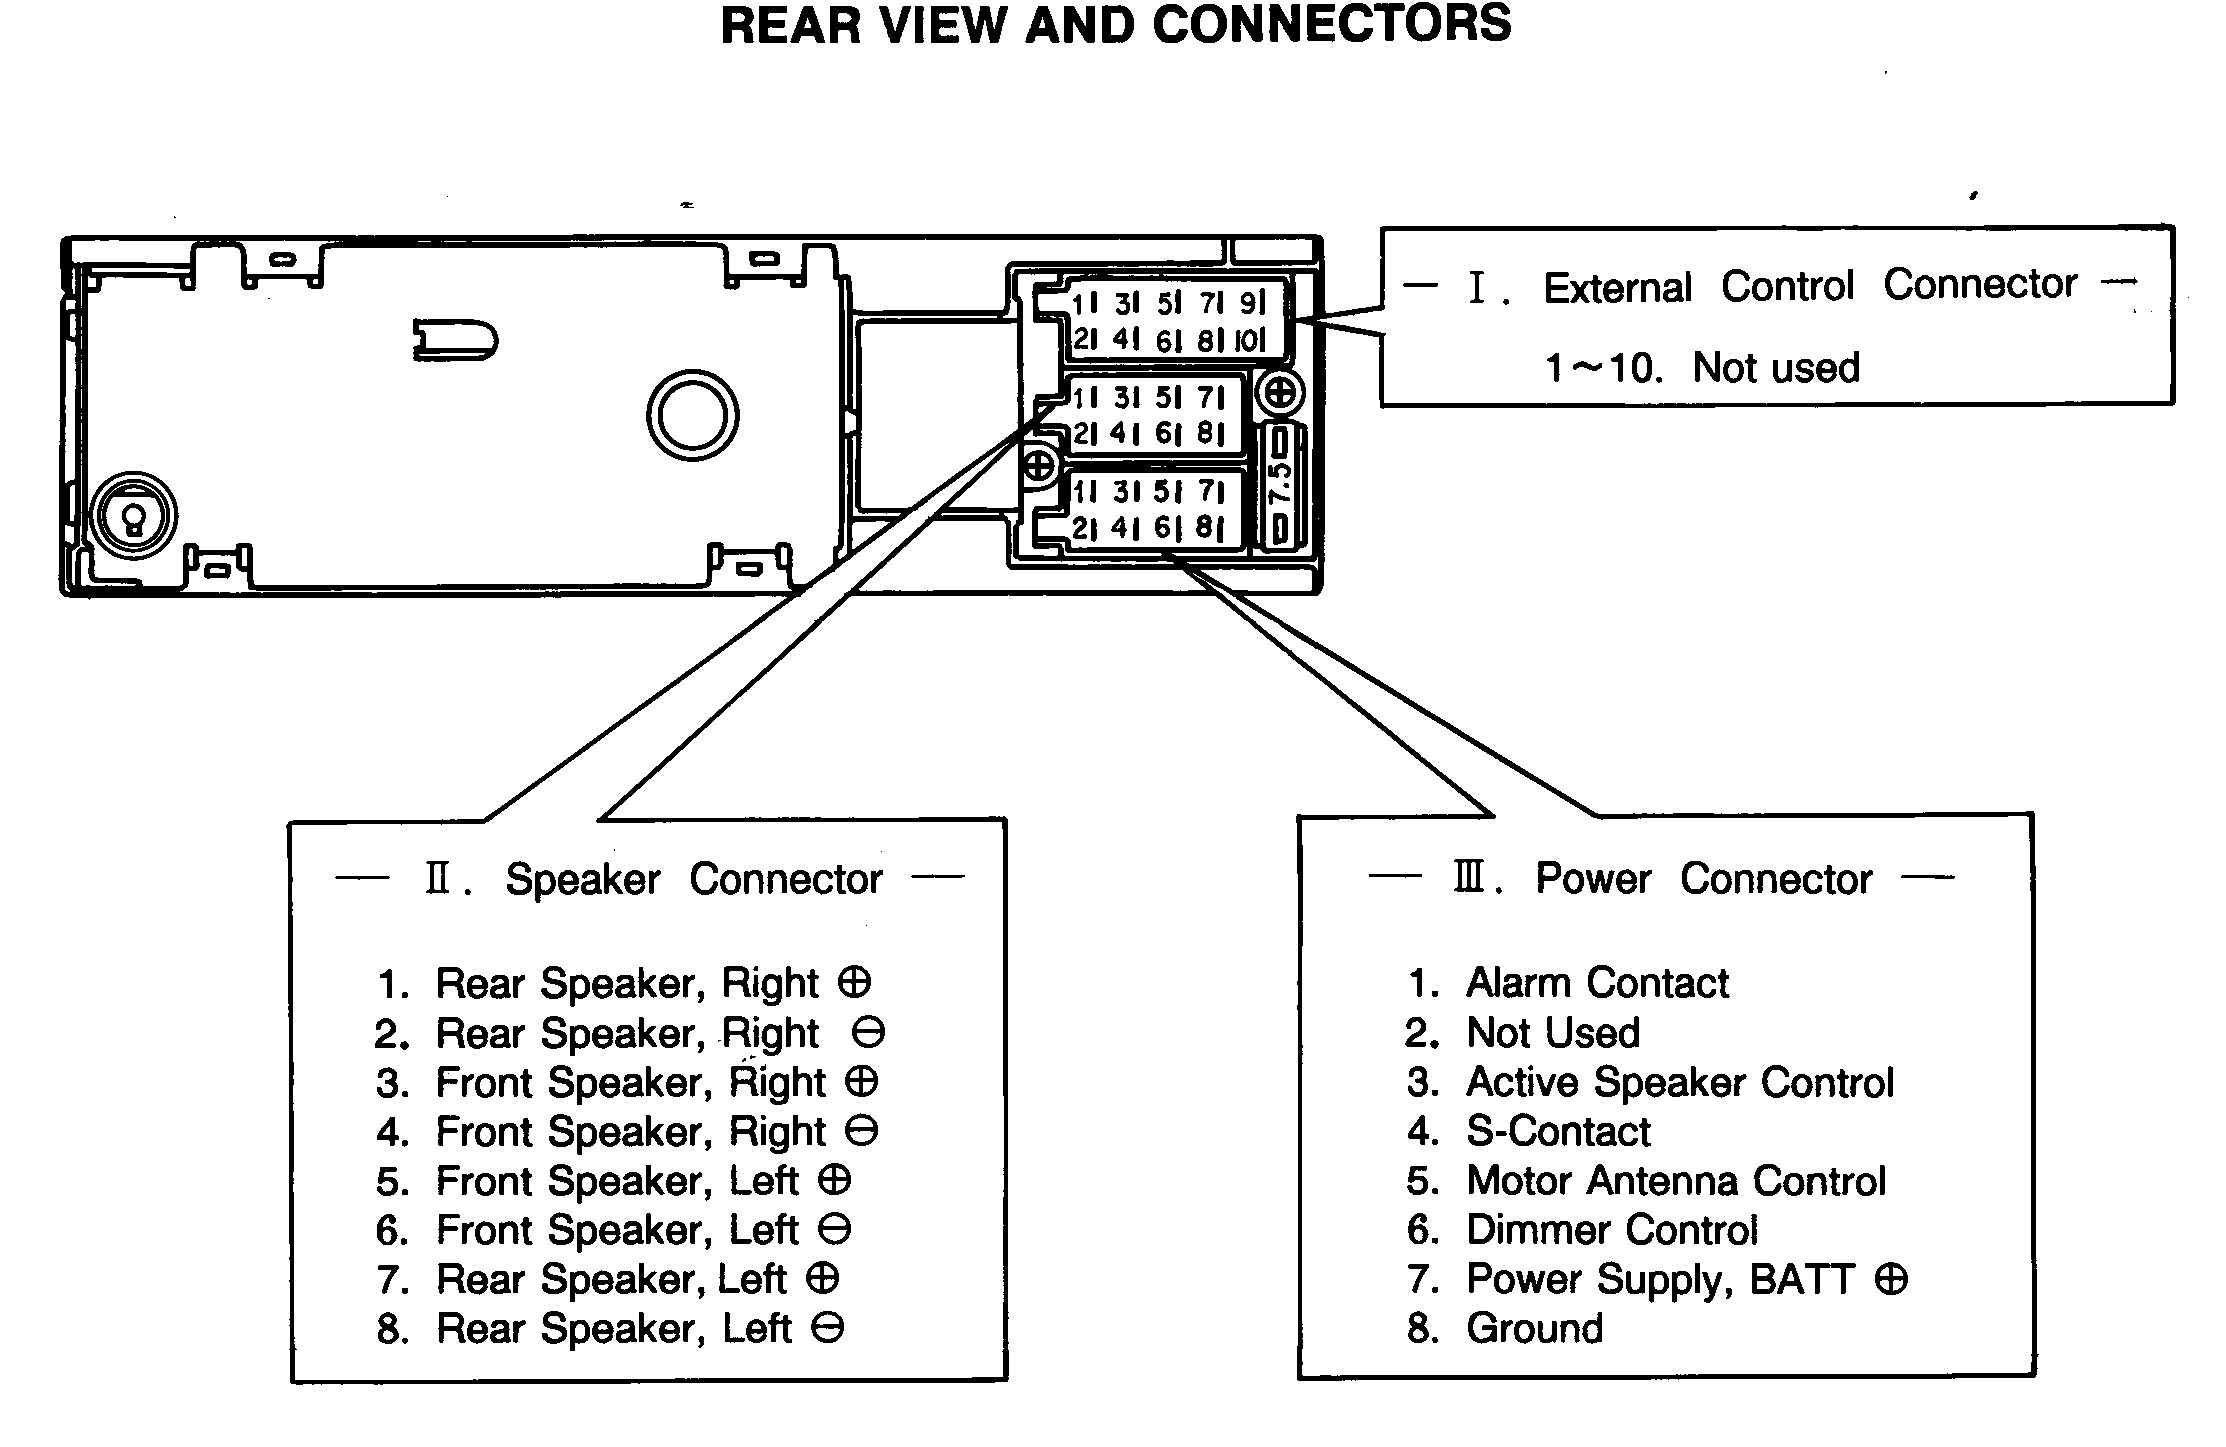 New Car Stereo Power Amplifier Wiring Diagram Diagram Diagramtemplate Diagramsample Jetta A4 Jetta 2002 Sistema Electrico